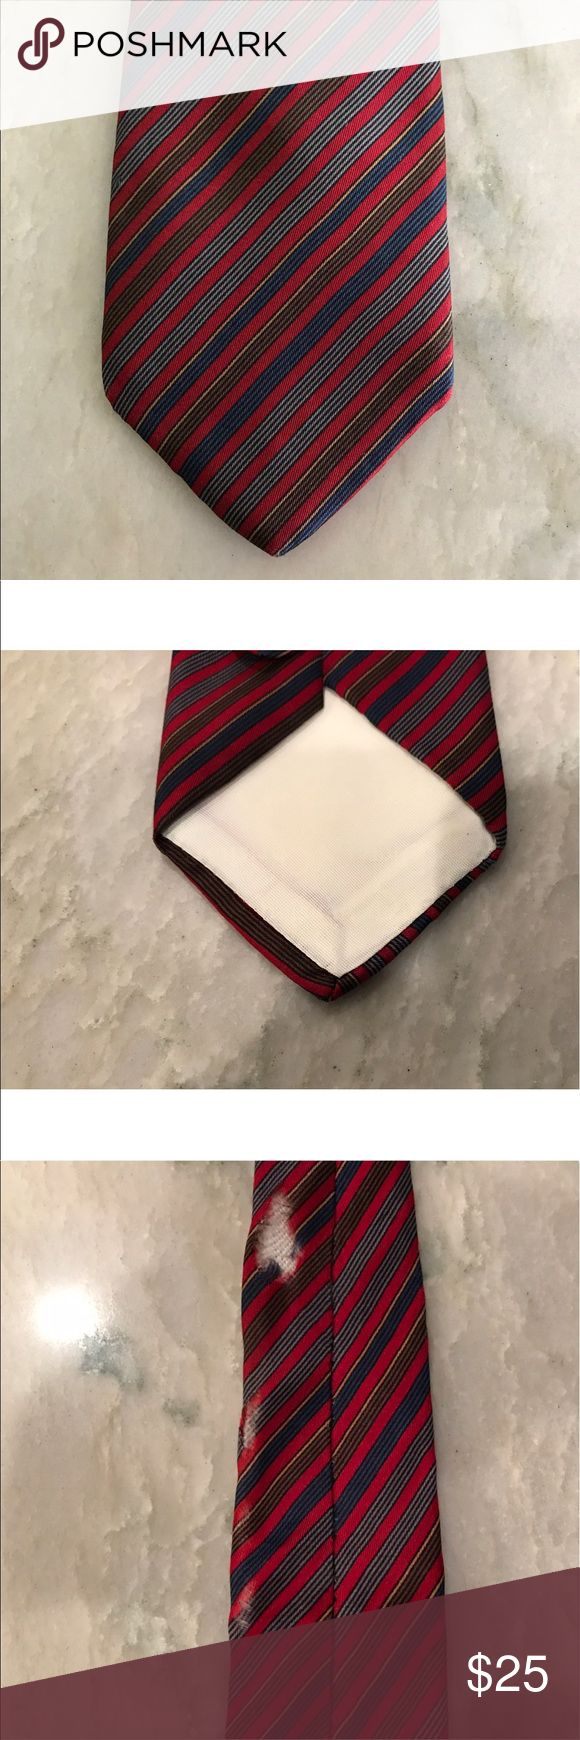 Christian Dior Cravates Vintage Tie Up for sale is a Vintage Christian Dior Cravates from Saks Fifth Avenue Tie.  Yes. I know this Tie isn't in perfect condition. There is a tear in the back but this is such a beautiful Tie and otherwise in great condition l Christian Dior Accessories Ties